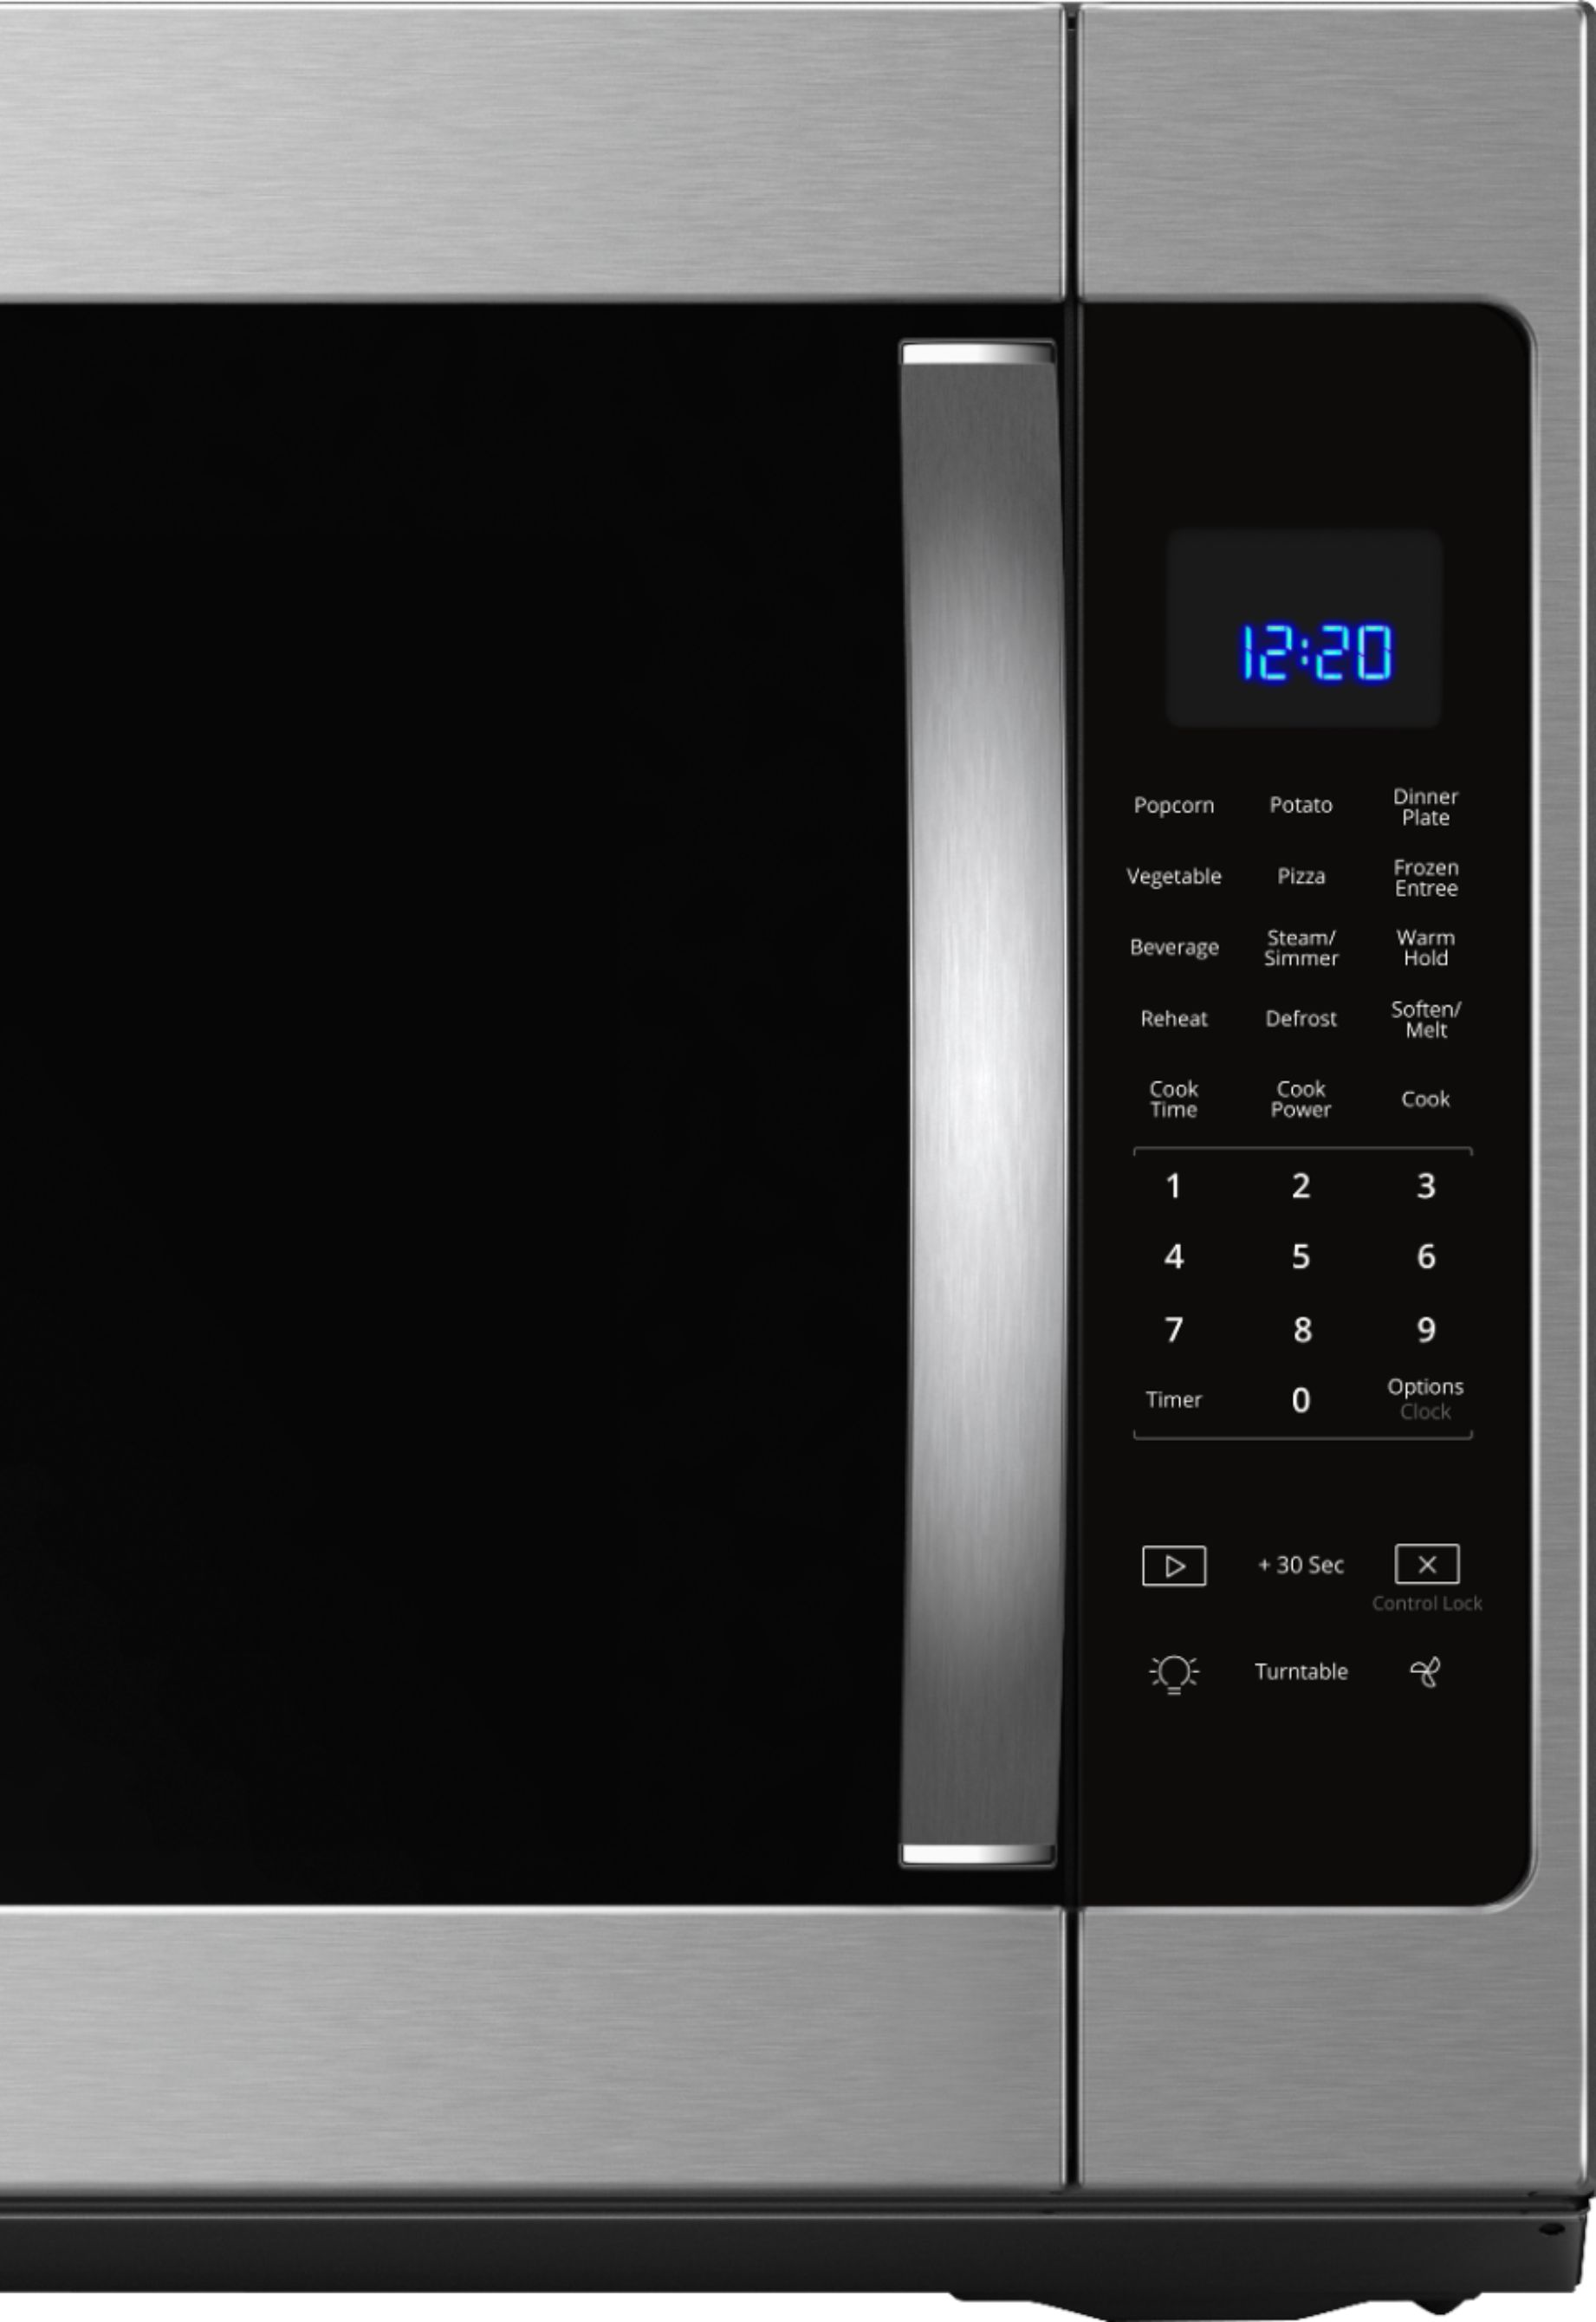 whirlpool 2 1 cu ft over the range fingerprint resistant microwave with sensor cooking stainless steel fingerprint resistant stainless steel